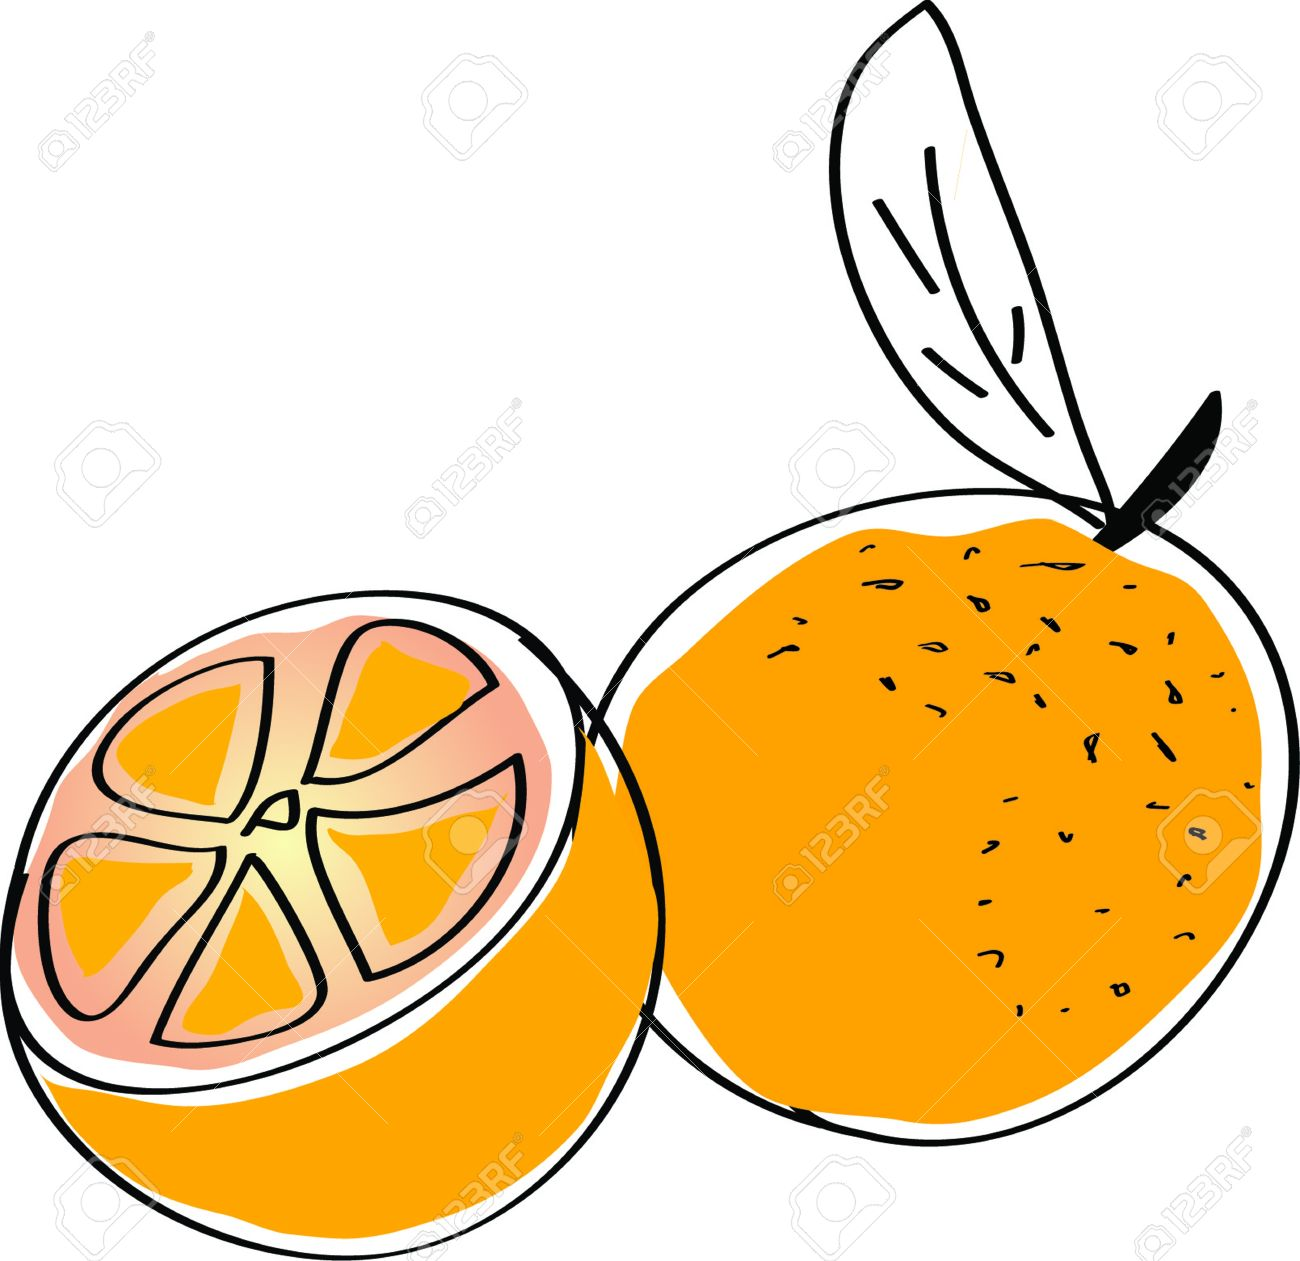 vector orange royalty free cliparts vectors and stock illustration rh 123rf com orange clipart fruit orange clipart image